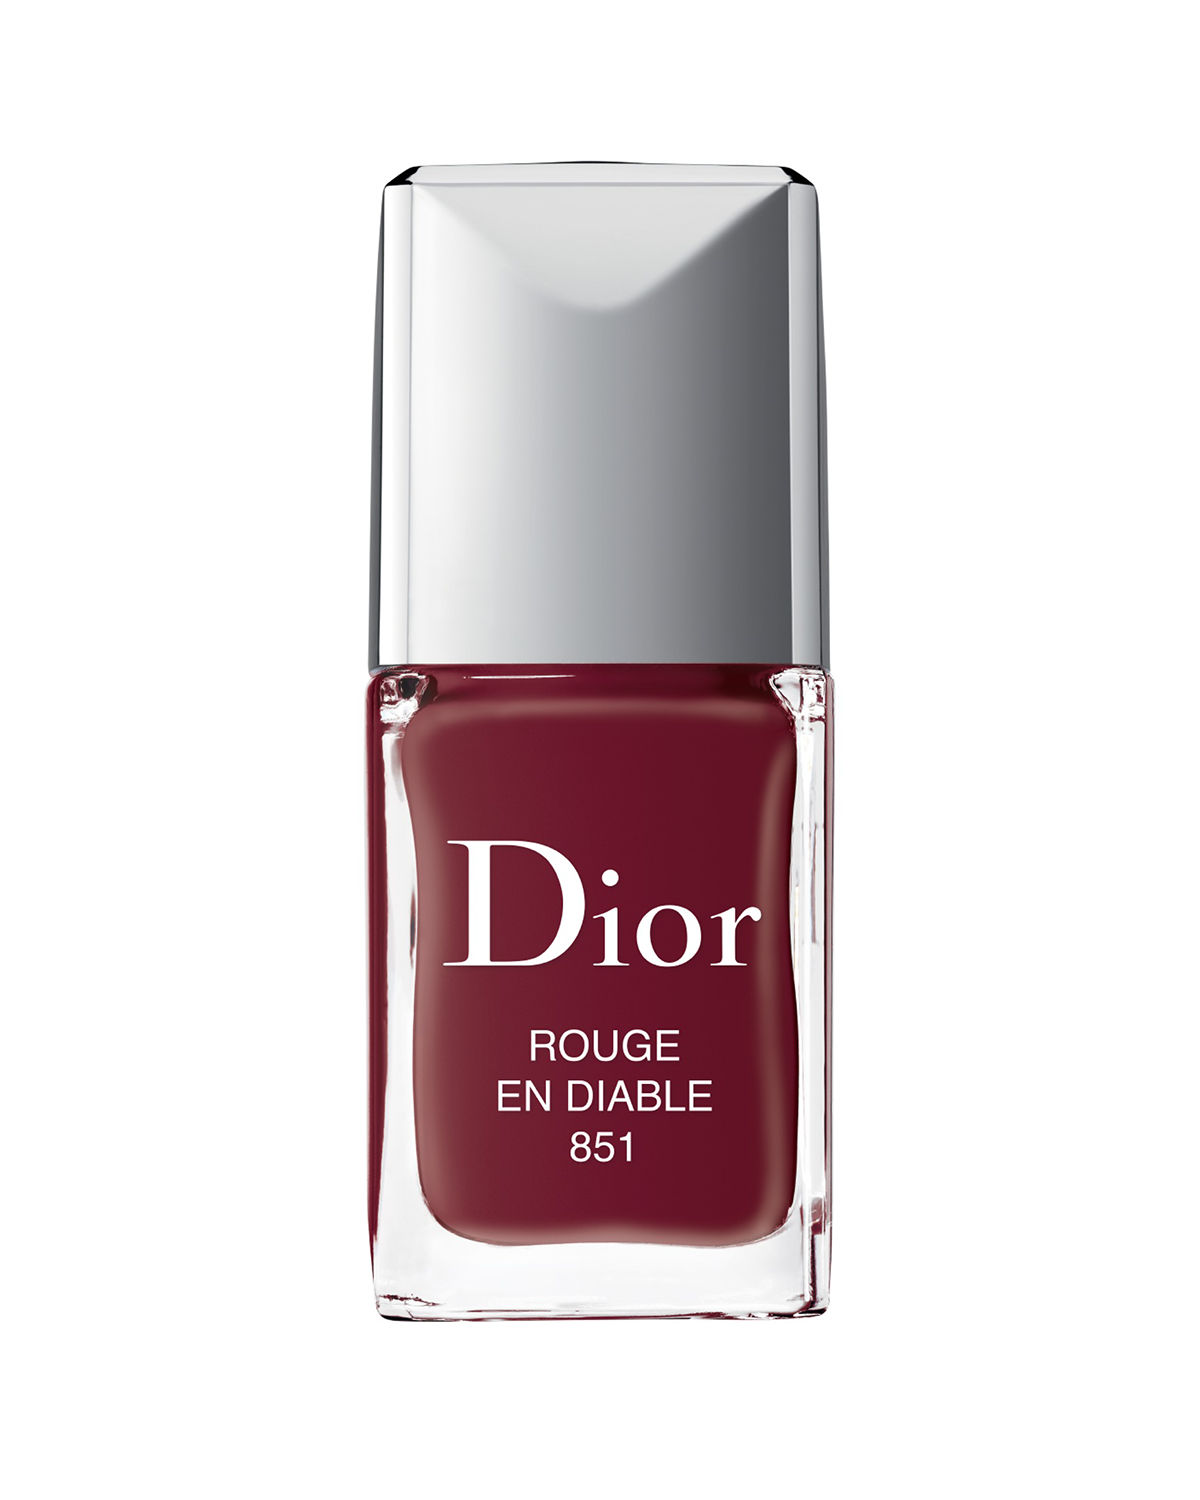 Limited Edition Dior Vernis Nail Polish